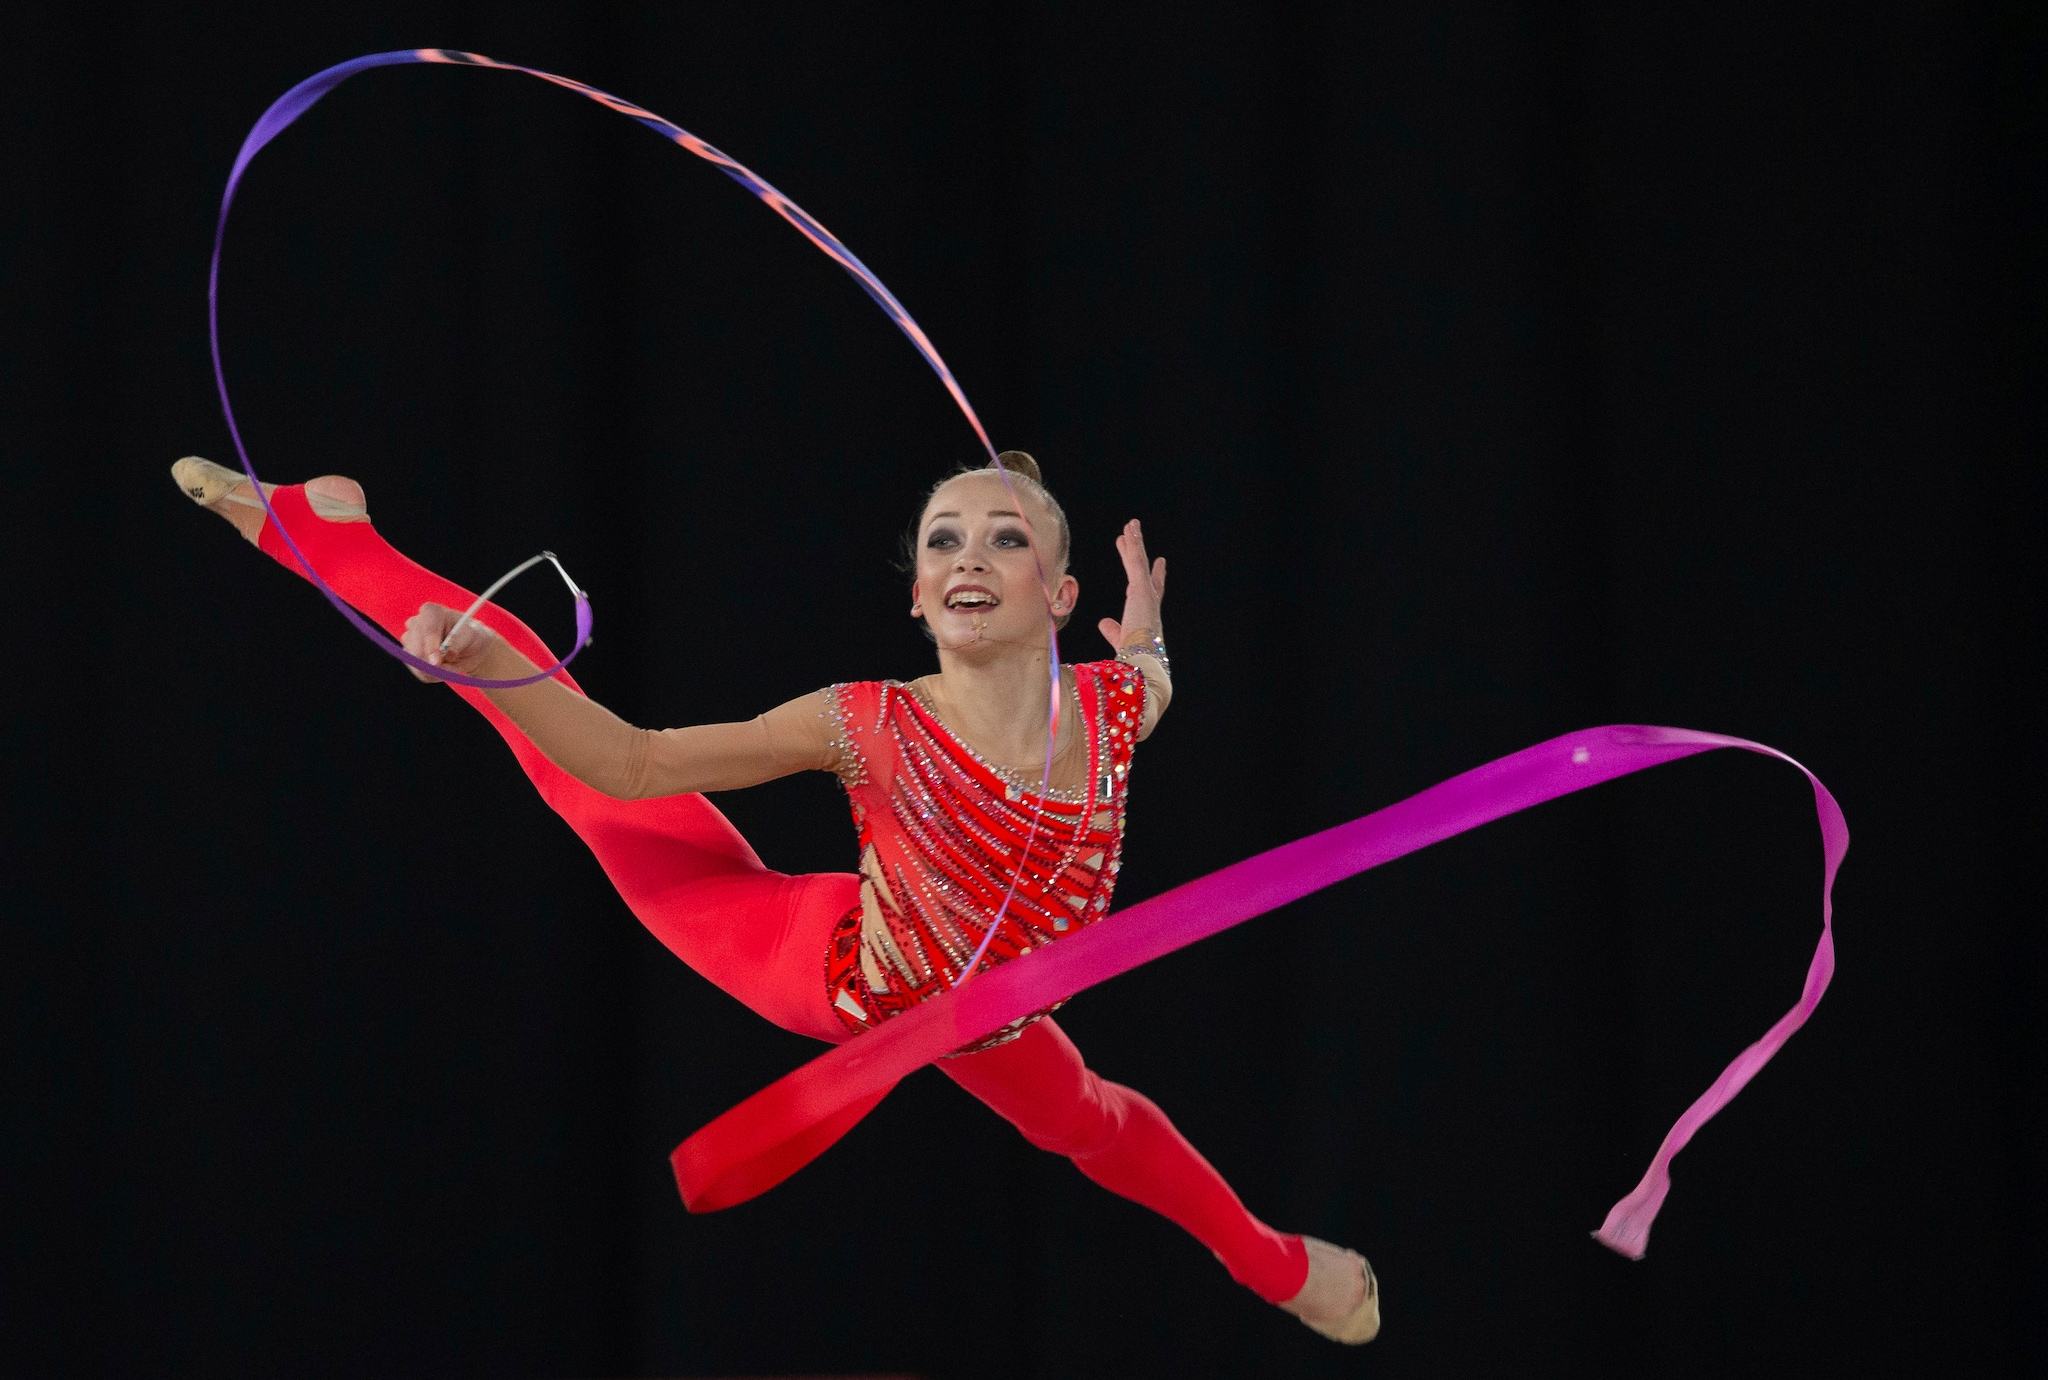 In this photo provided by the OIS/IOC, Ukraine's Khrystyna Pohranychna, with Team Dong Dong, competes in the Rhythmic Gymnastics Ribbon Routine during the Gymnastic Multi-Discipline Team event in Youth Olympic Park at the Youth Olympic Games in Buenos Aires, Argentina, Wednesday, Oct. 10, 2018. (Ivo Gonzalez/OIS/IOC via AP)